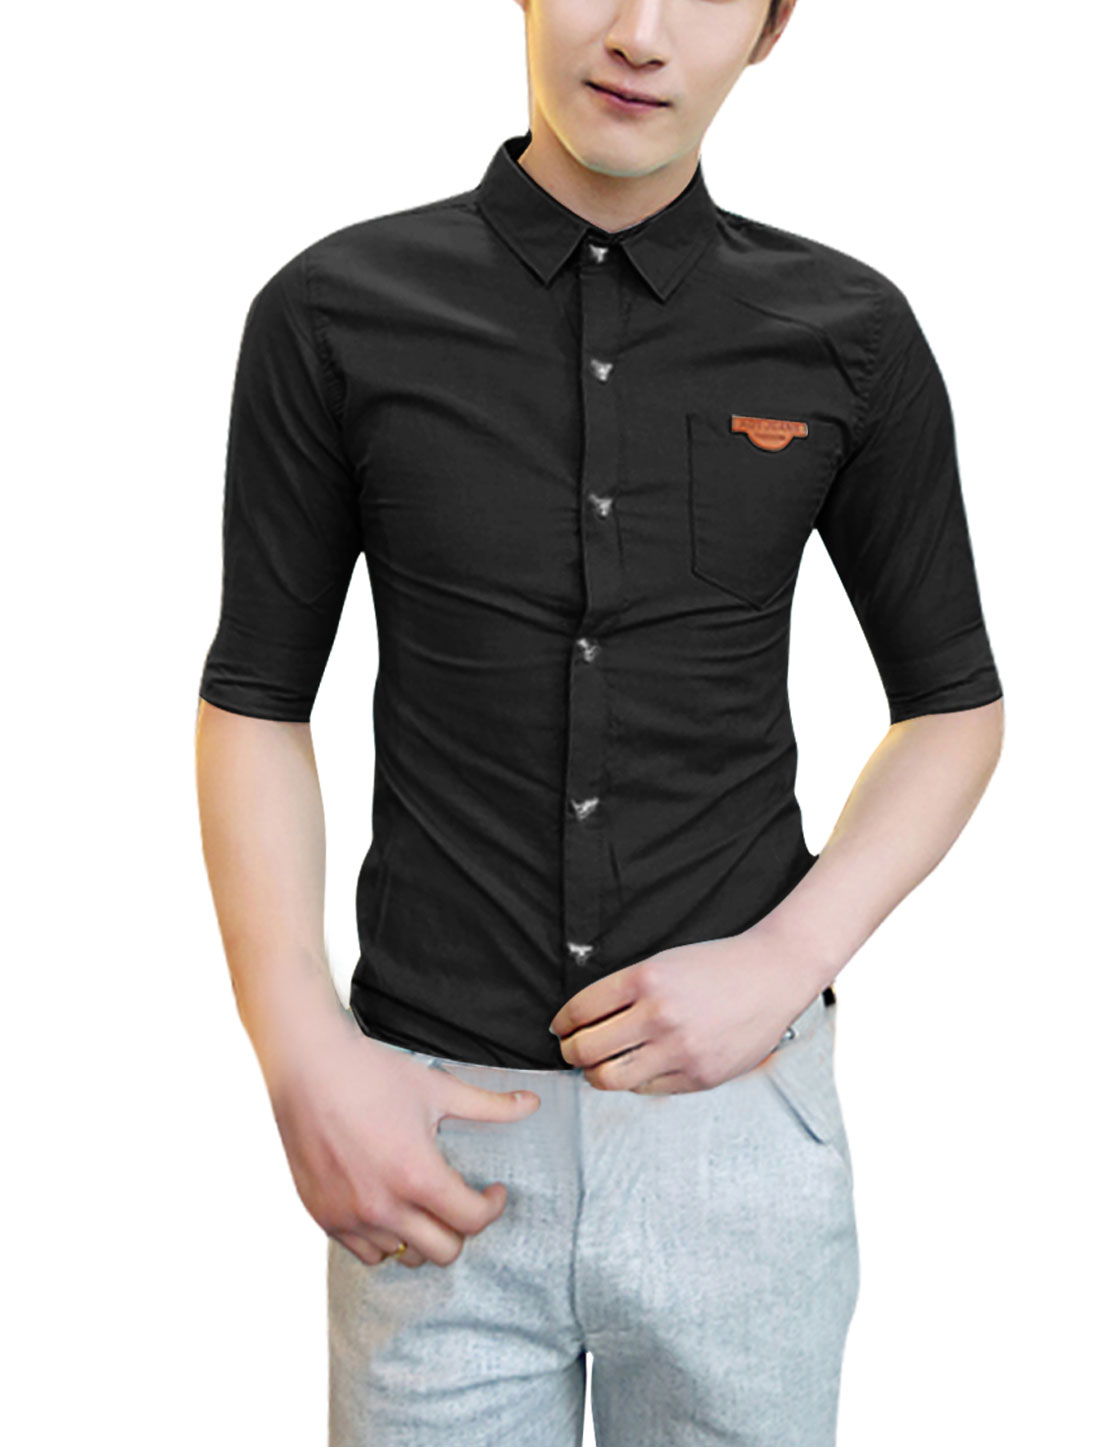 Man Chest Pocket Stripes Buttoned Cuff Stylish Shirt Black S